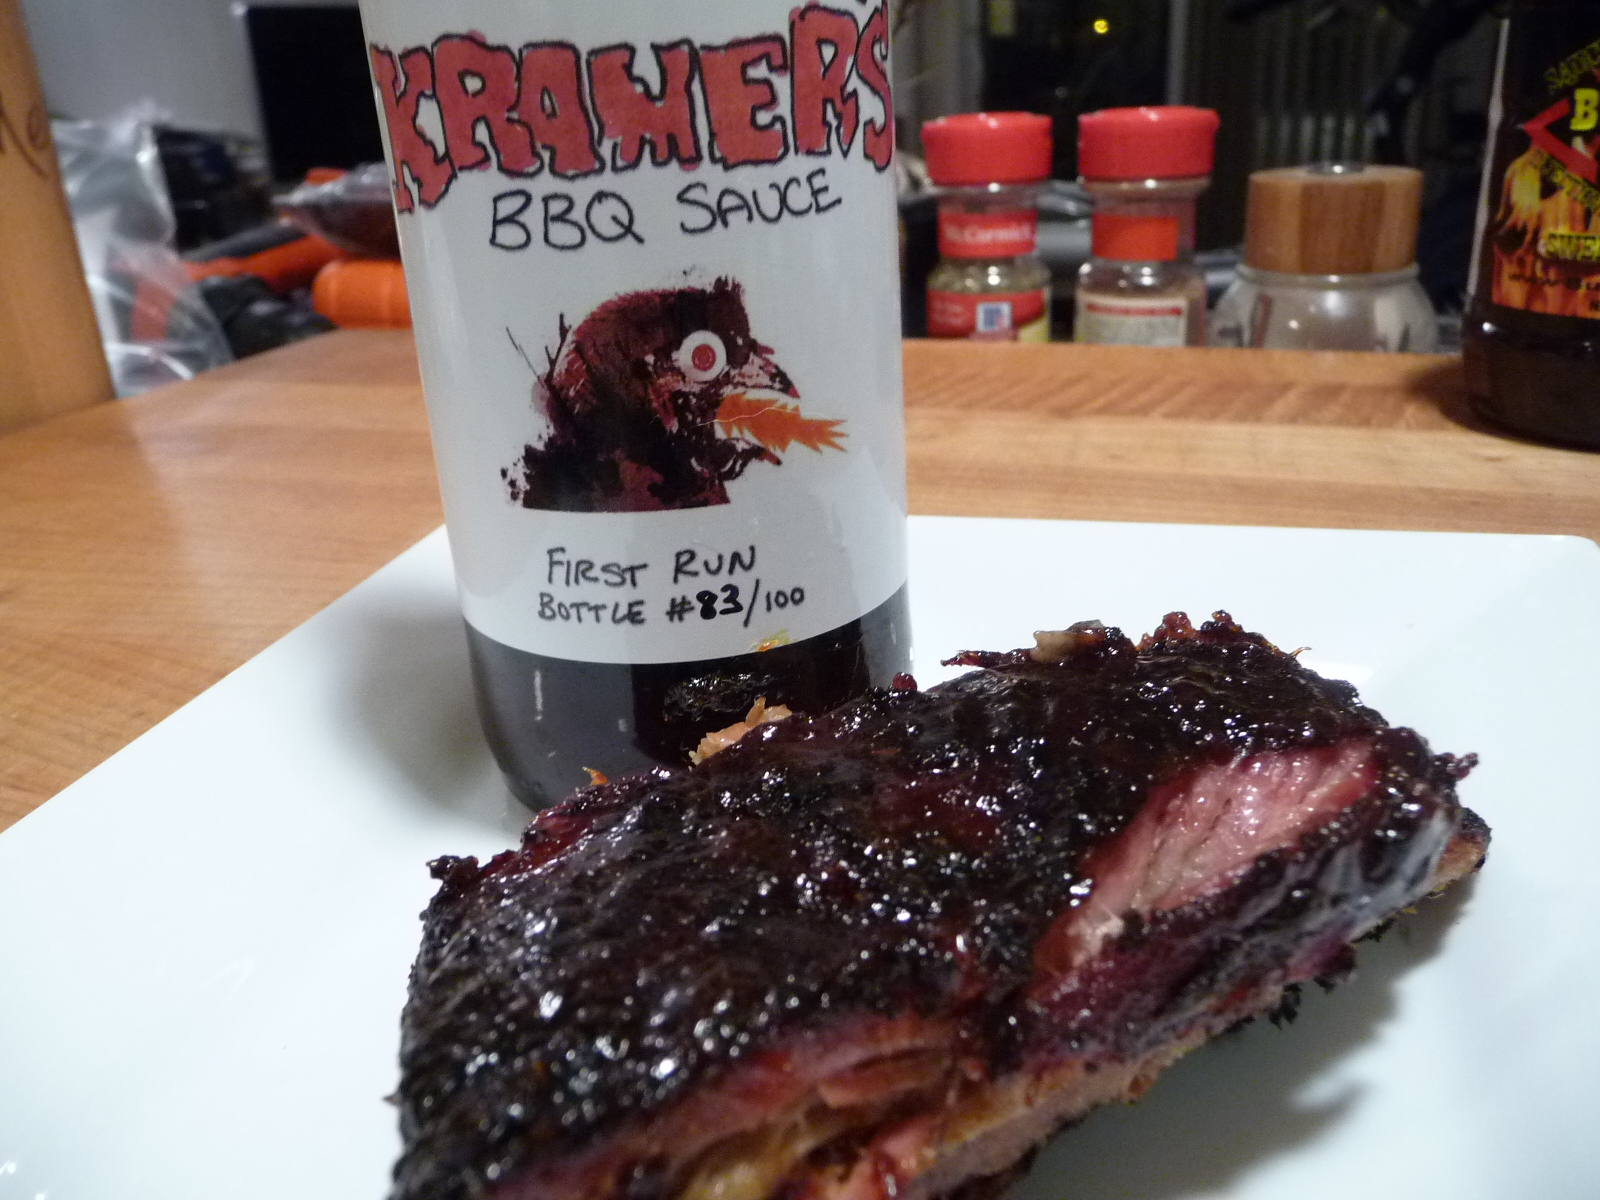 Beautiful set up and glaze on the ribs from Kramer's BBQ Sauce